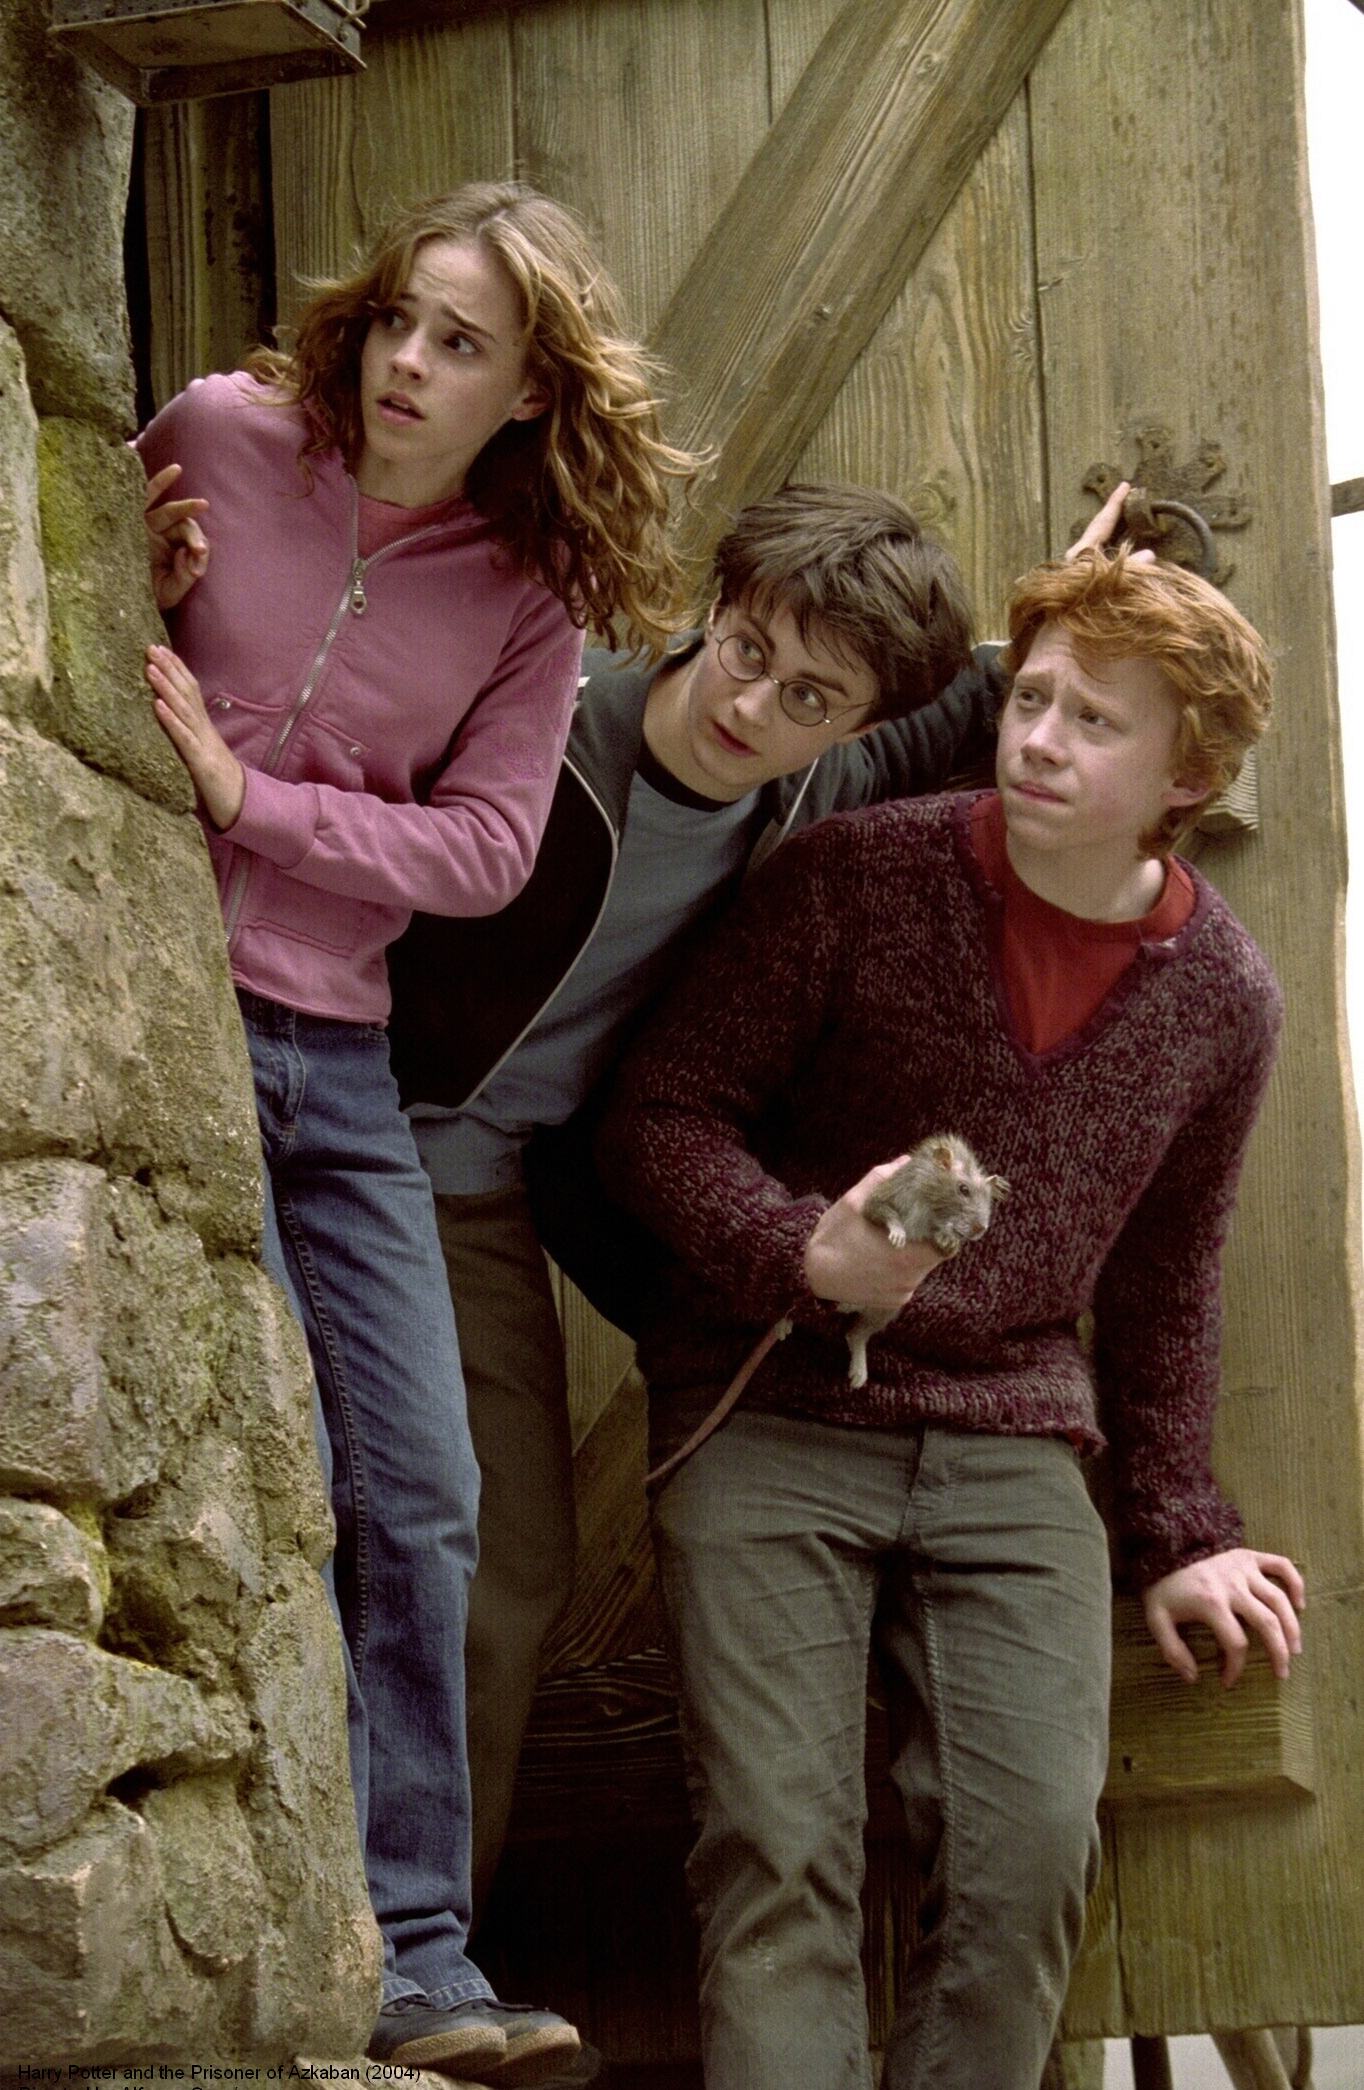 """Emma Watson (as Hermione Granger), Daniel Radcliffe (as Harry Potter), Rupert Grint (as Ron Weasley) are shown on the set of """"Harry Potter and the Prisoner of Azkaban"""" in 2004."""